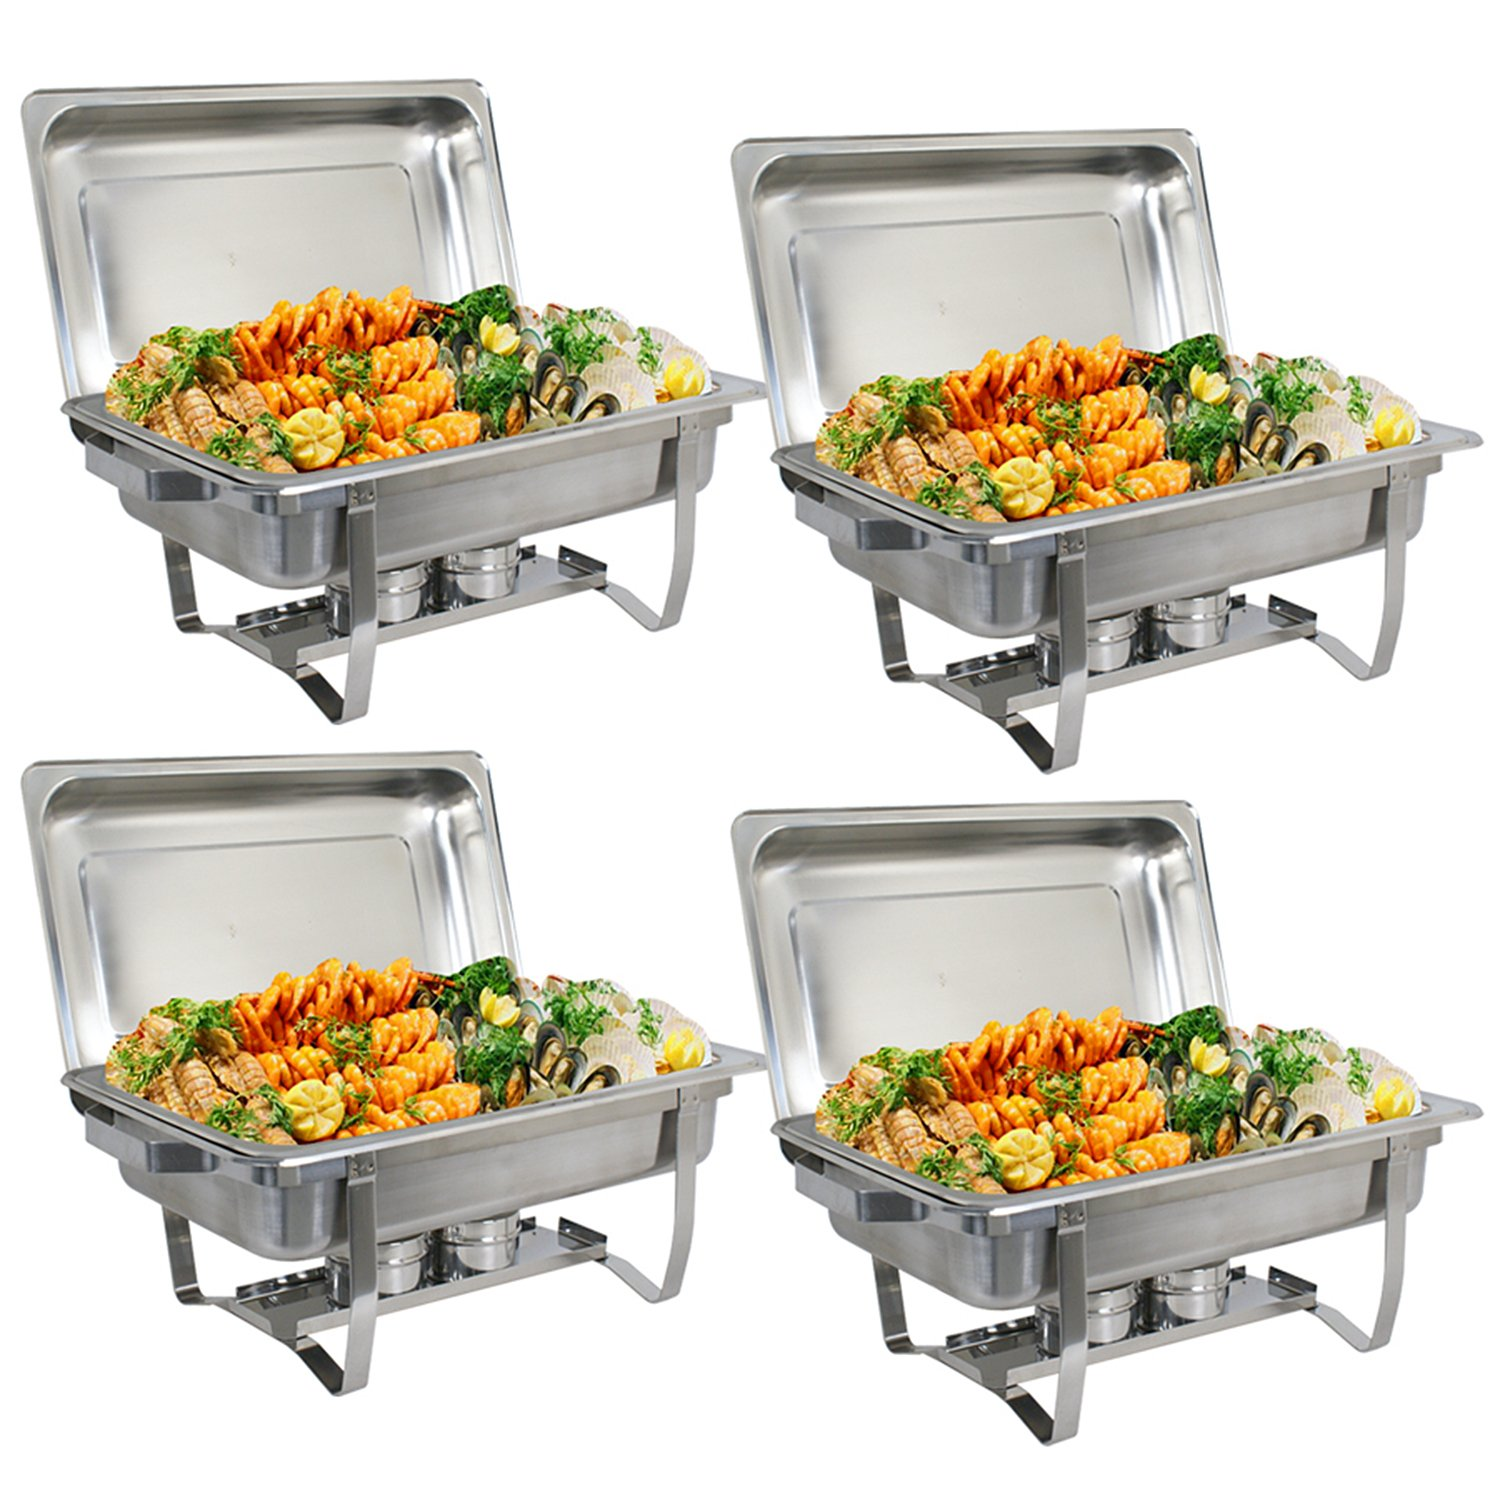 ZenChef New Version 8 Qt Stainless Steel Chafing Dish, Full Size Chafer, Food Warmer with Water Pan, Food Pan, Fuel Holder and Lid (4)